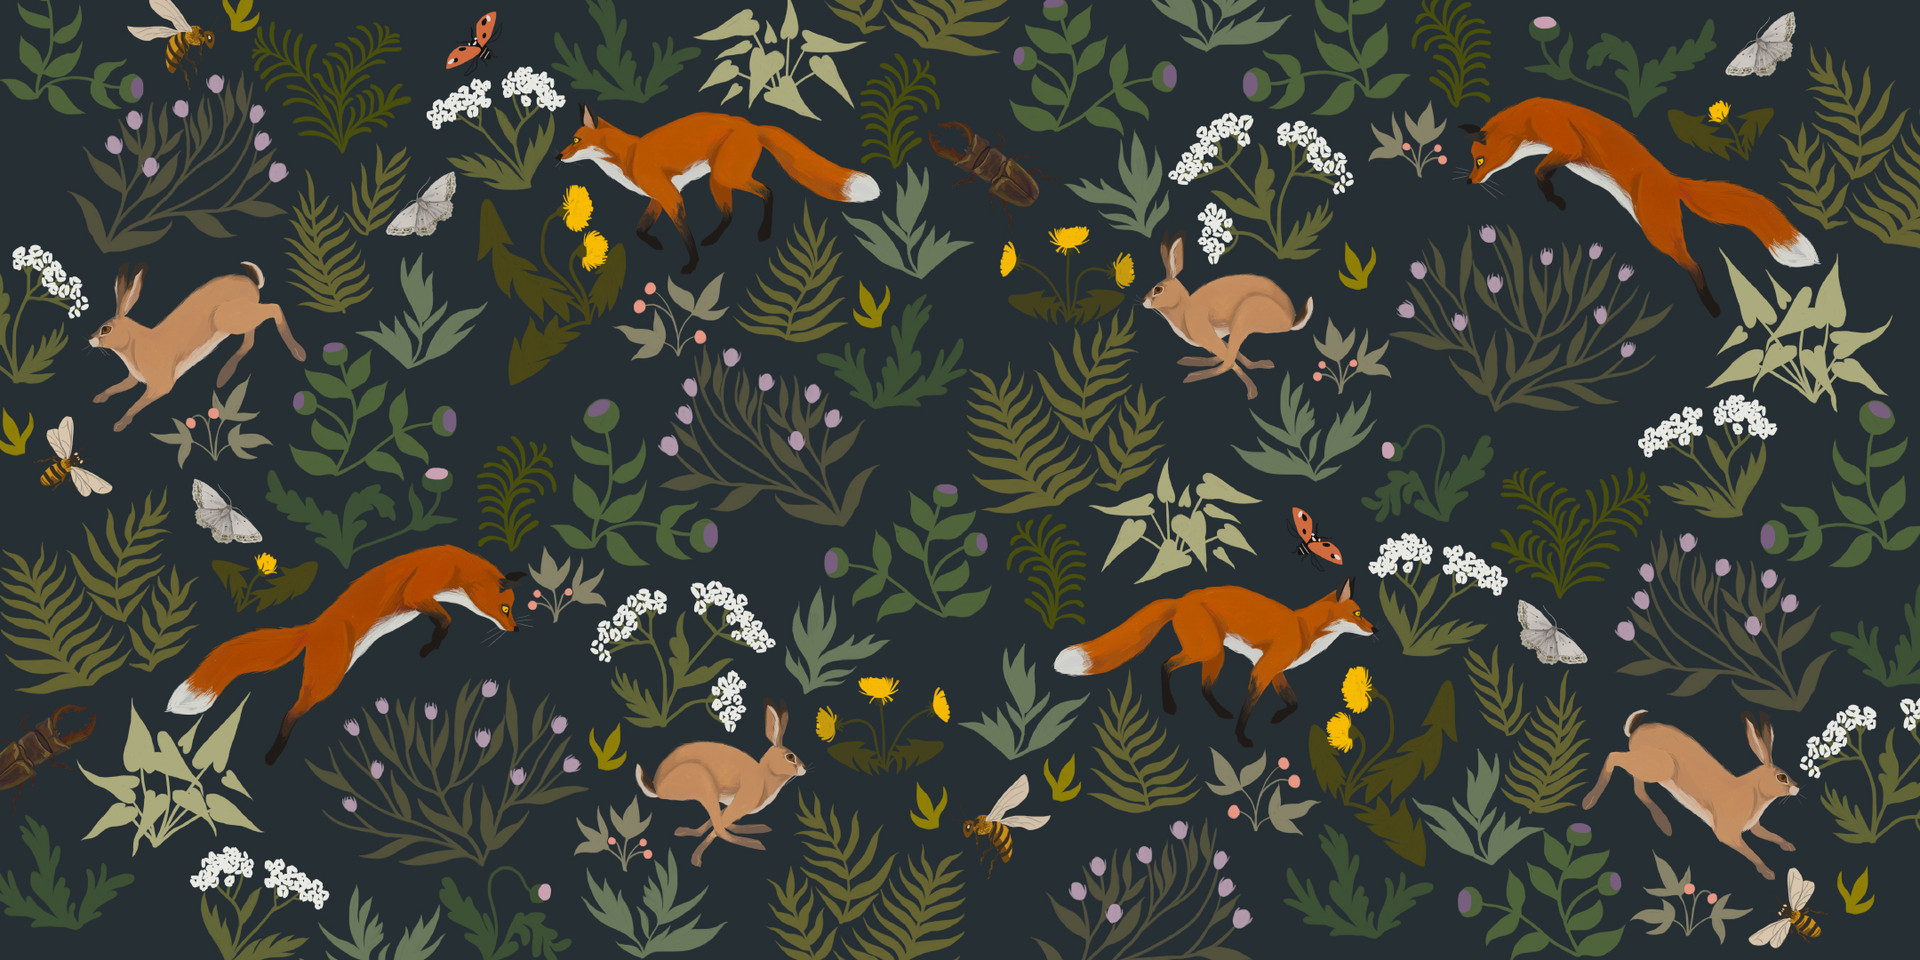 Leap, Hare, Leap - Endpapers